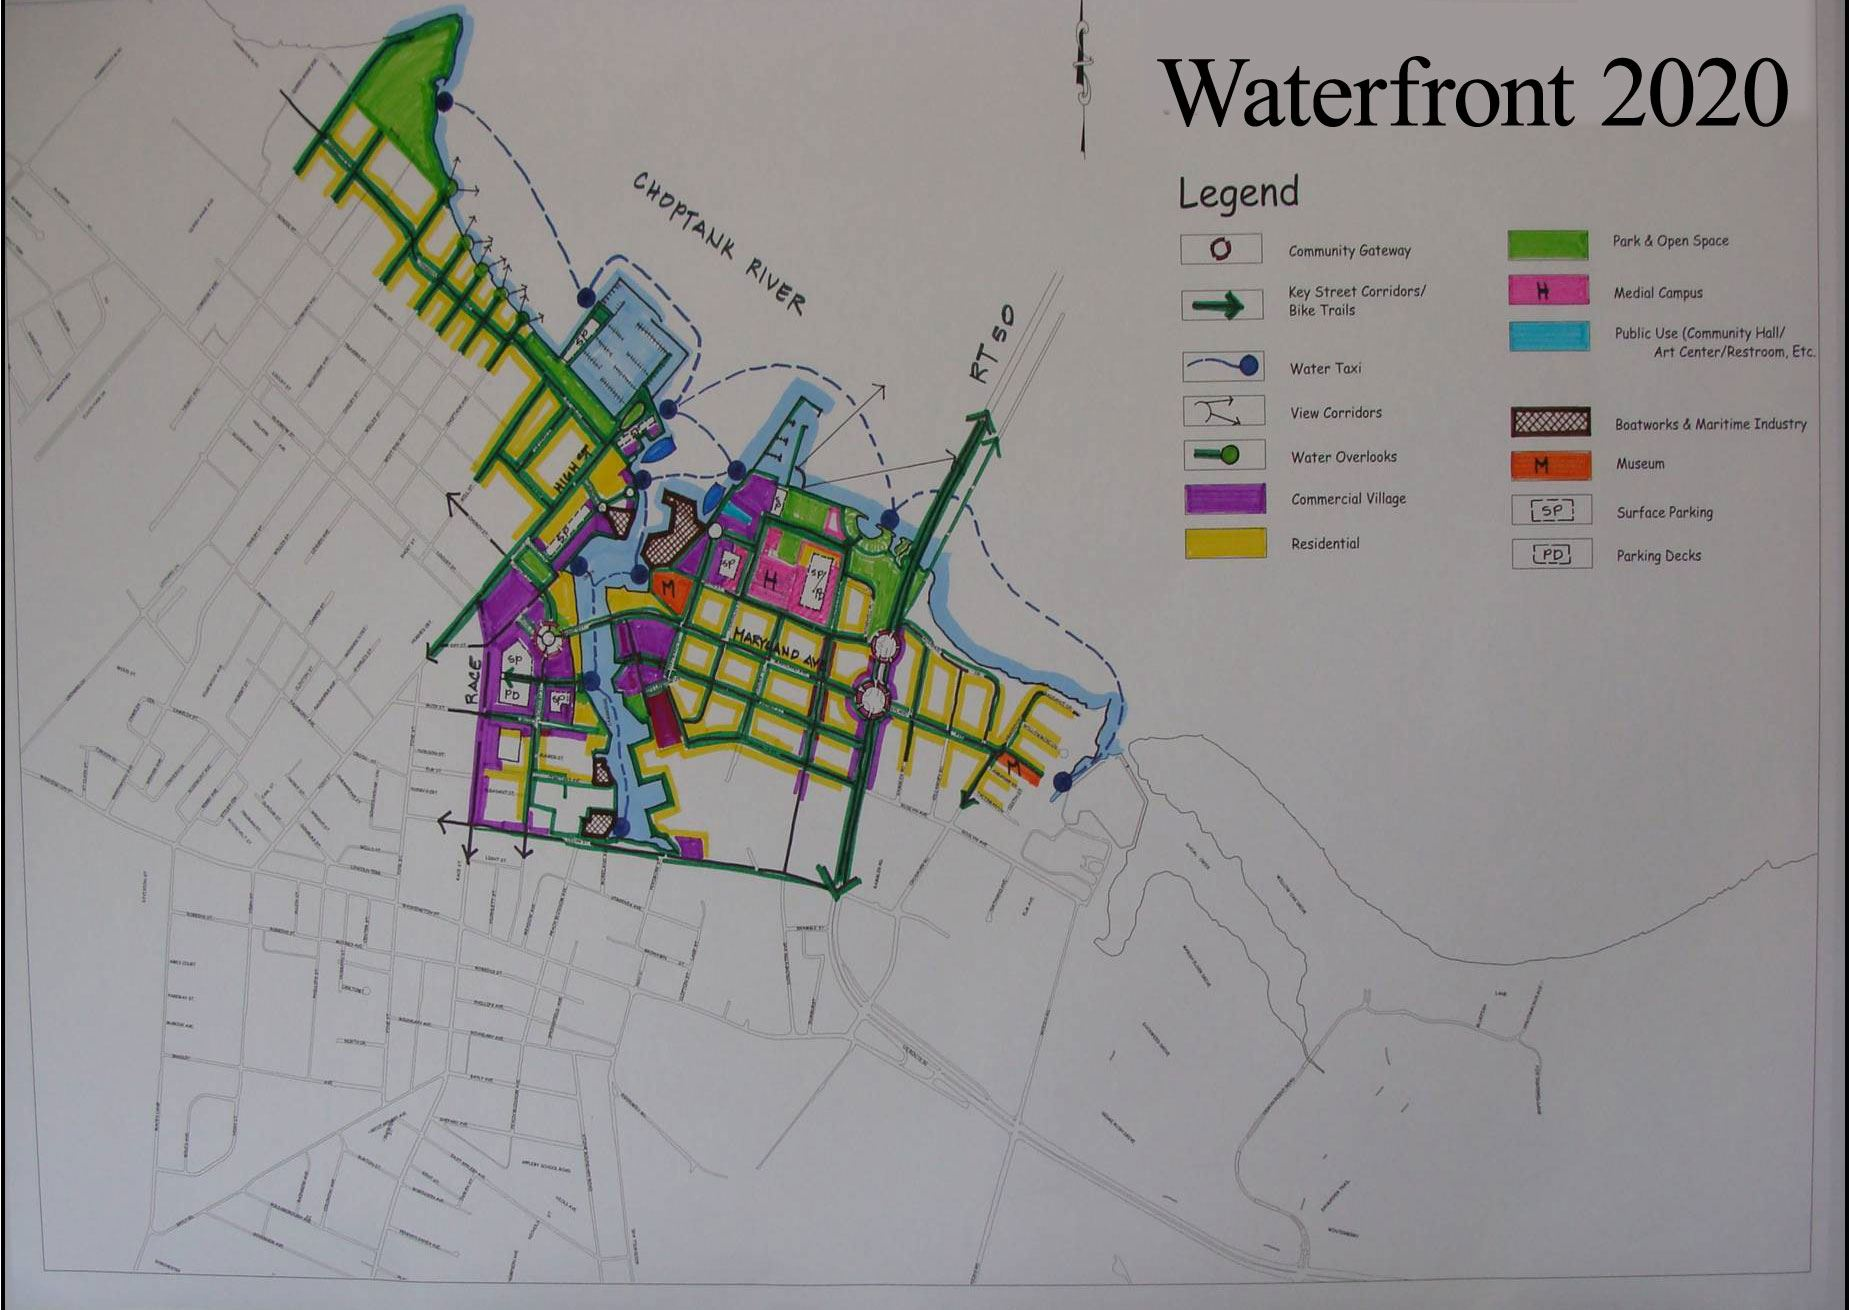 Waterfront 2020 Map